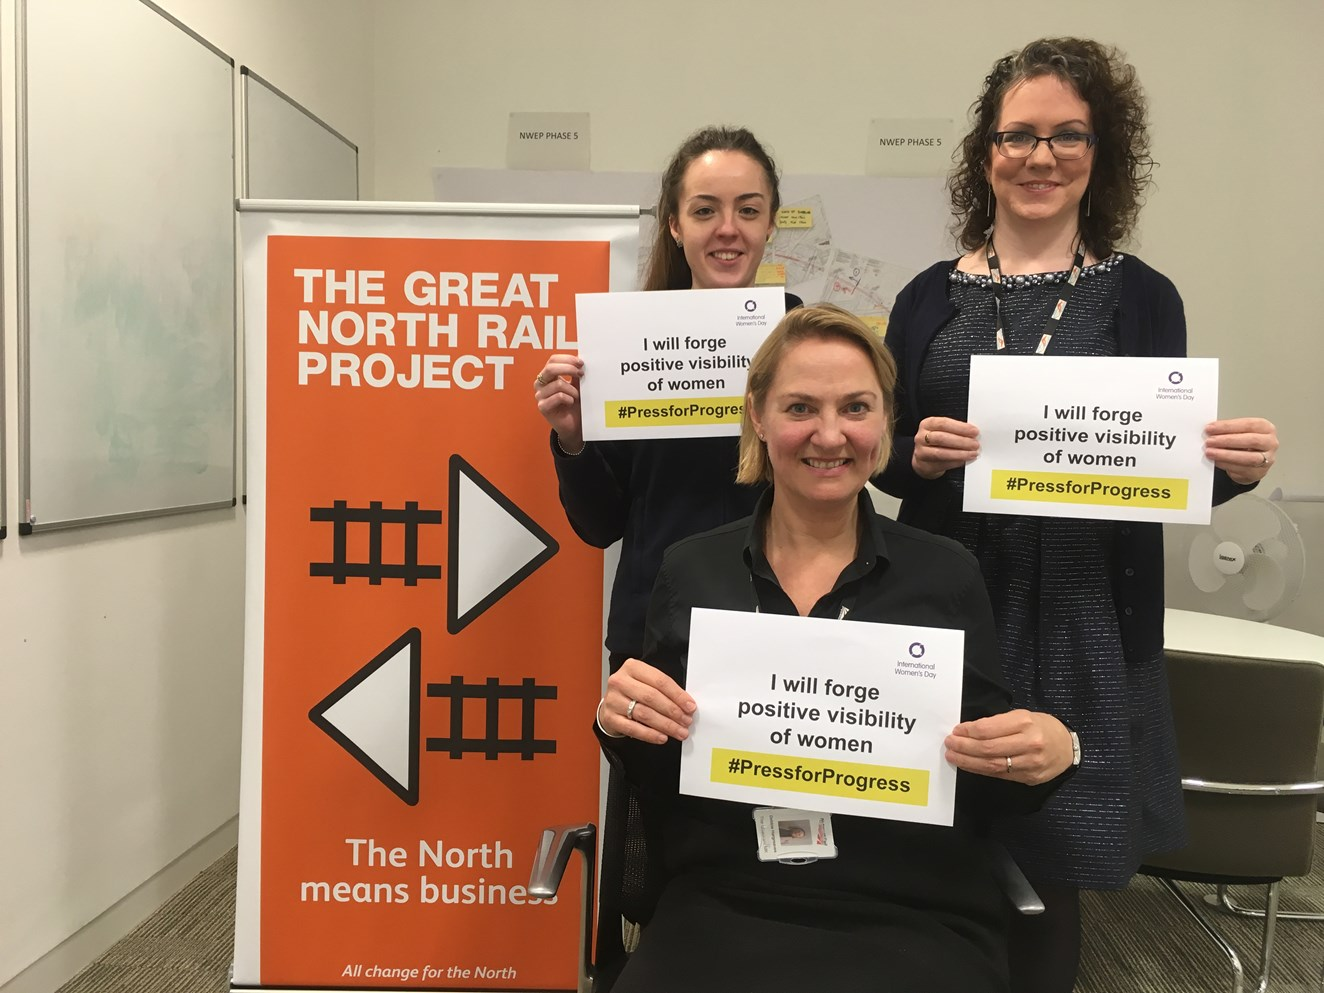 Great North Rail Project - powered by women: from left to right, Louise O'Brien, Debbie Hargreaves and Jennifer Gilleece Jones, all working for Network Rail on the Great North Rail Project